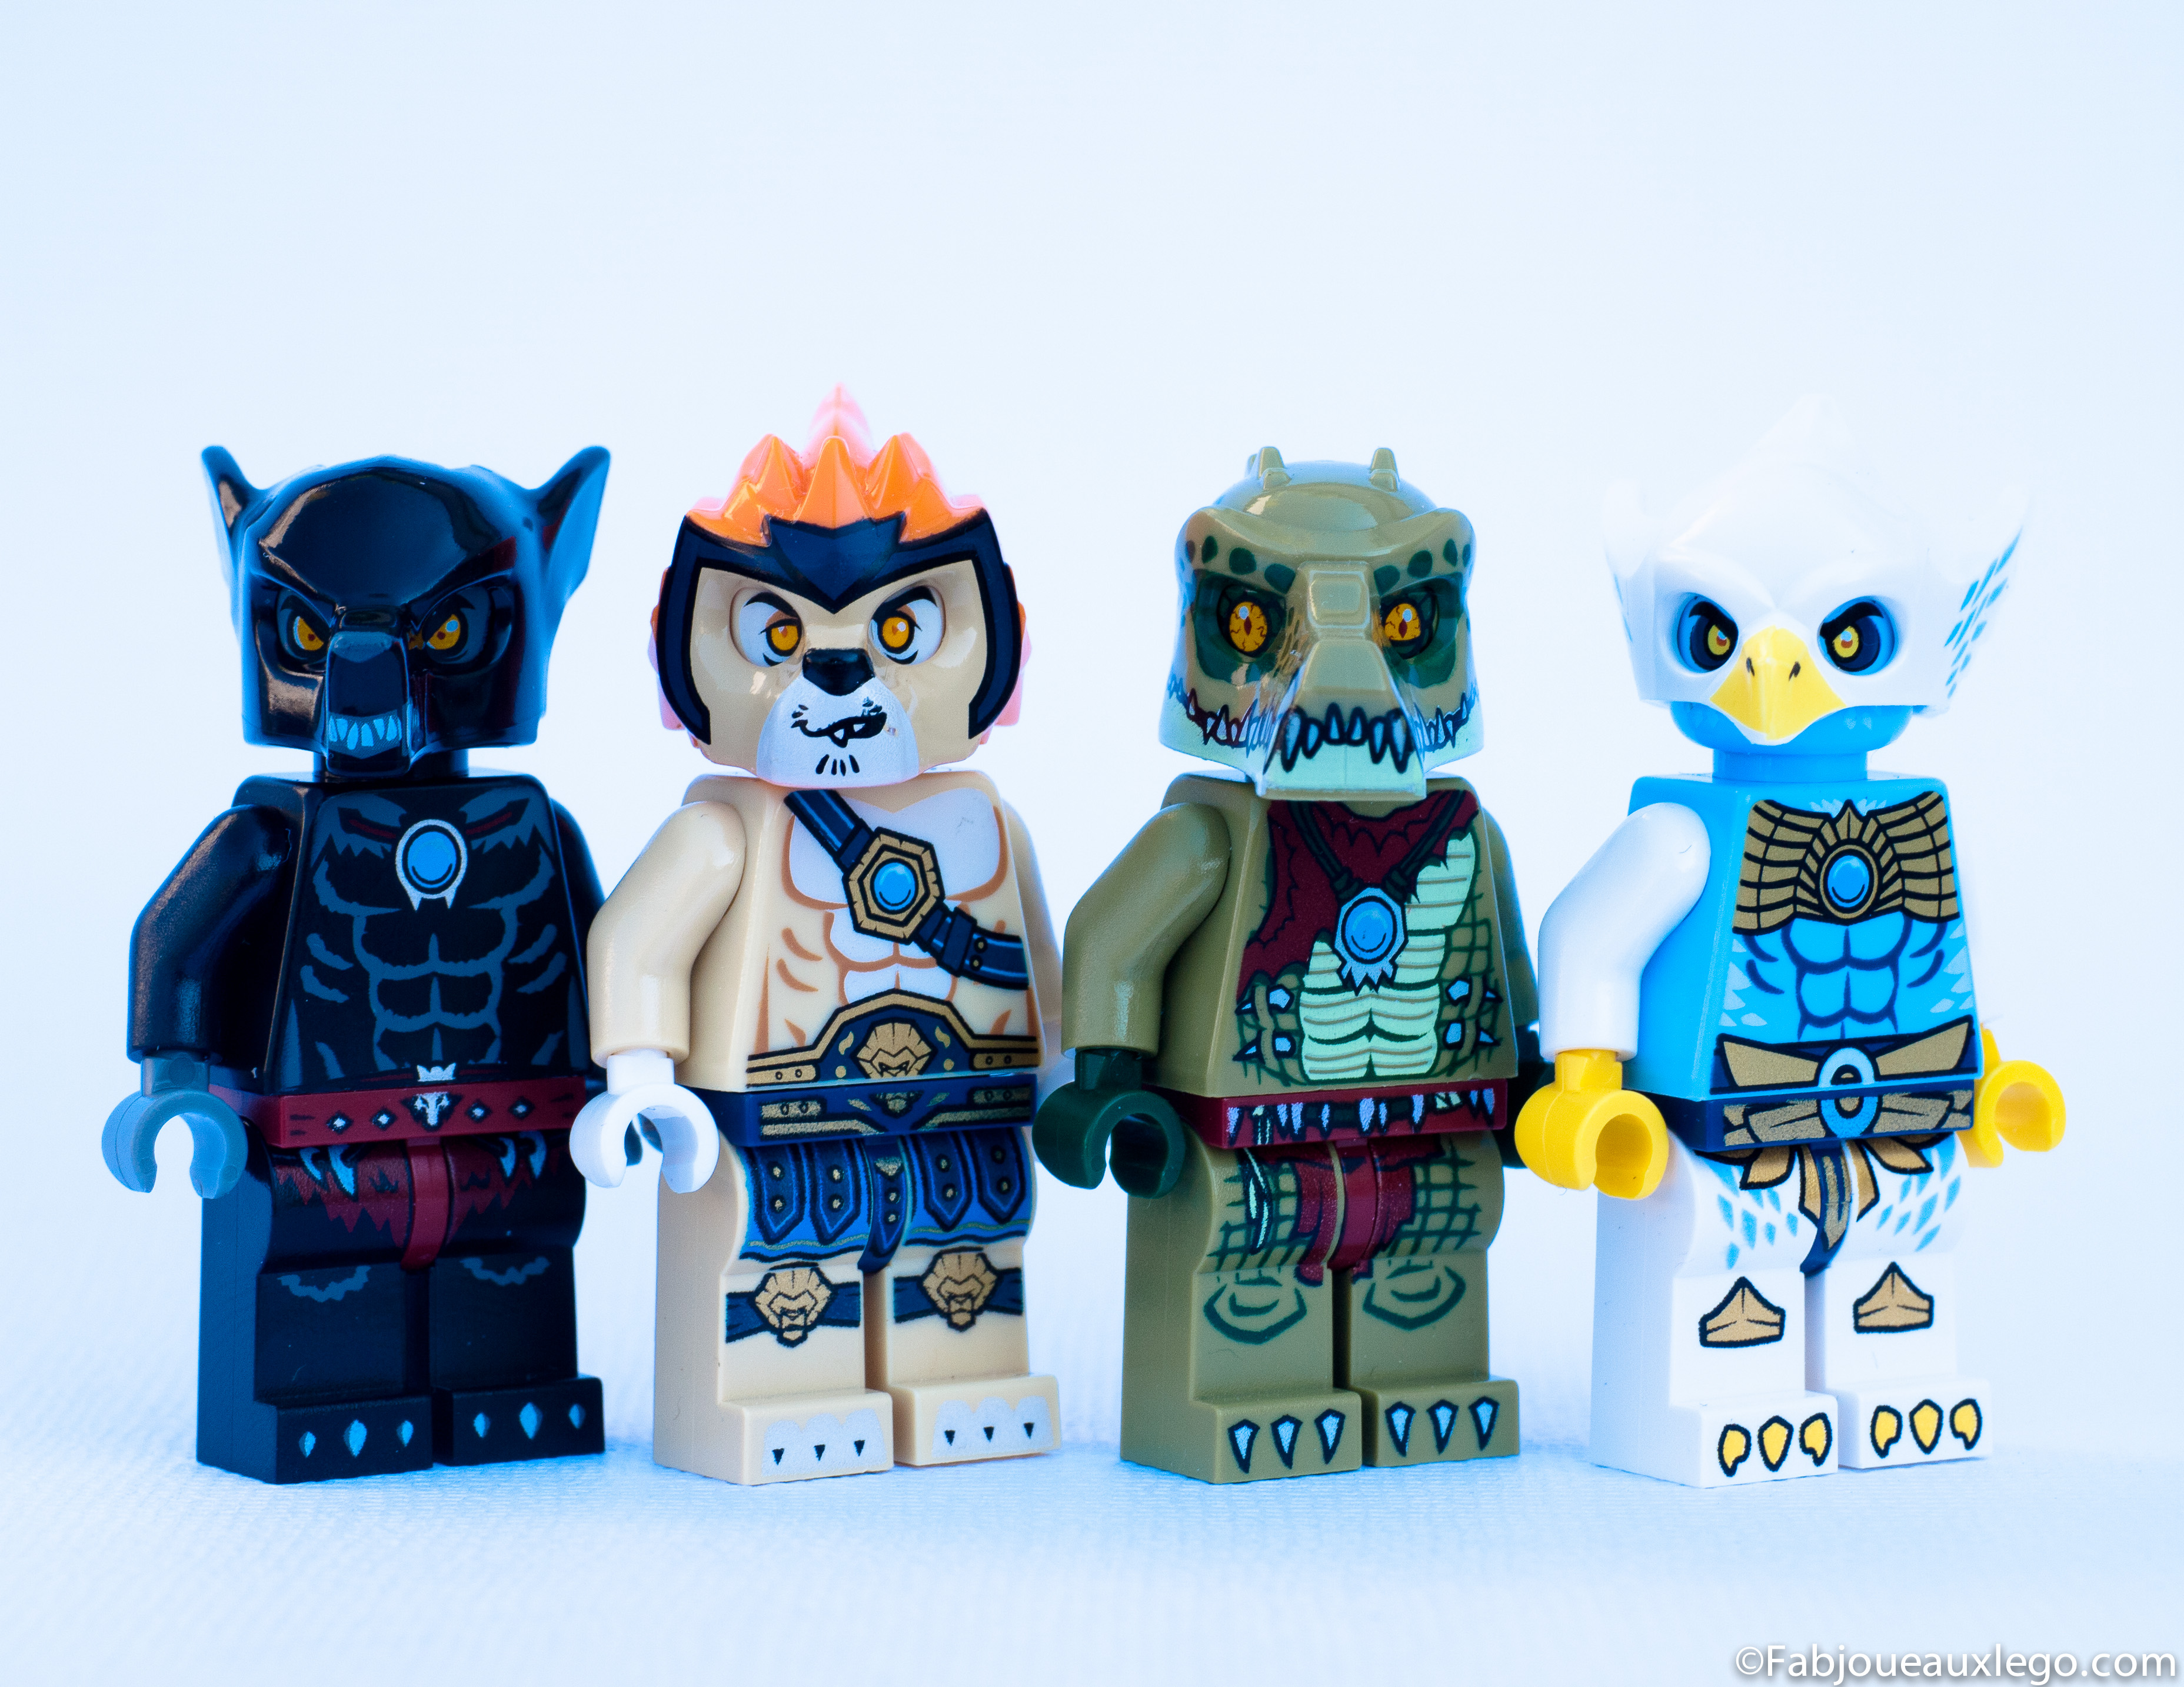 Legend of chima fab joue aux lego - Personnage lego chima ...